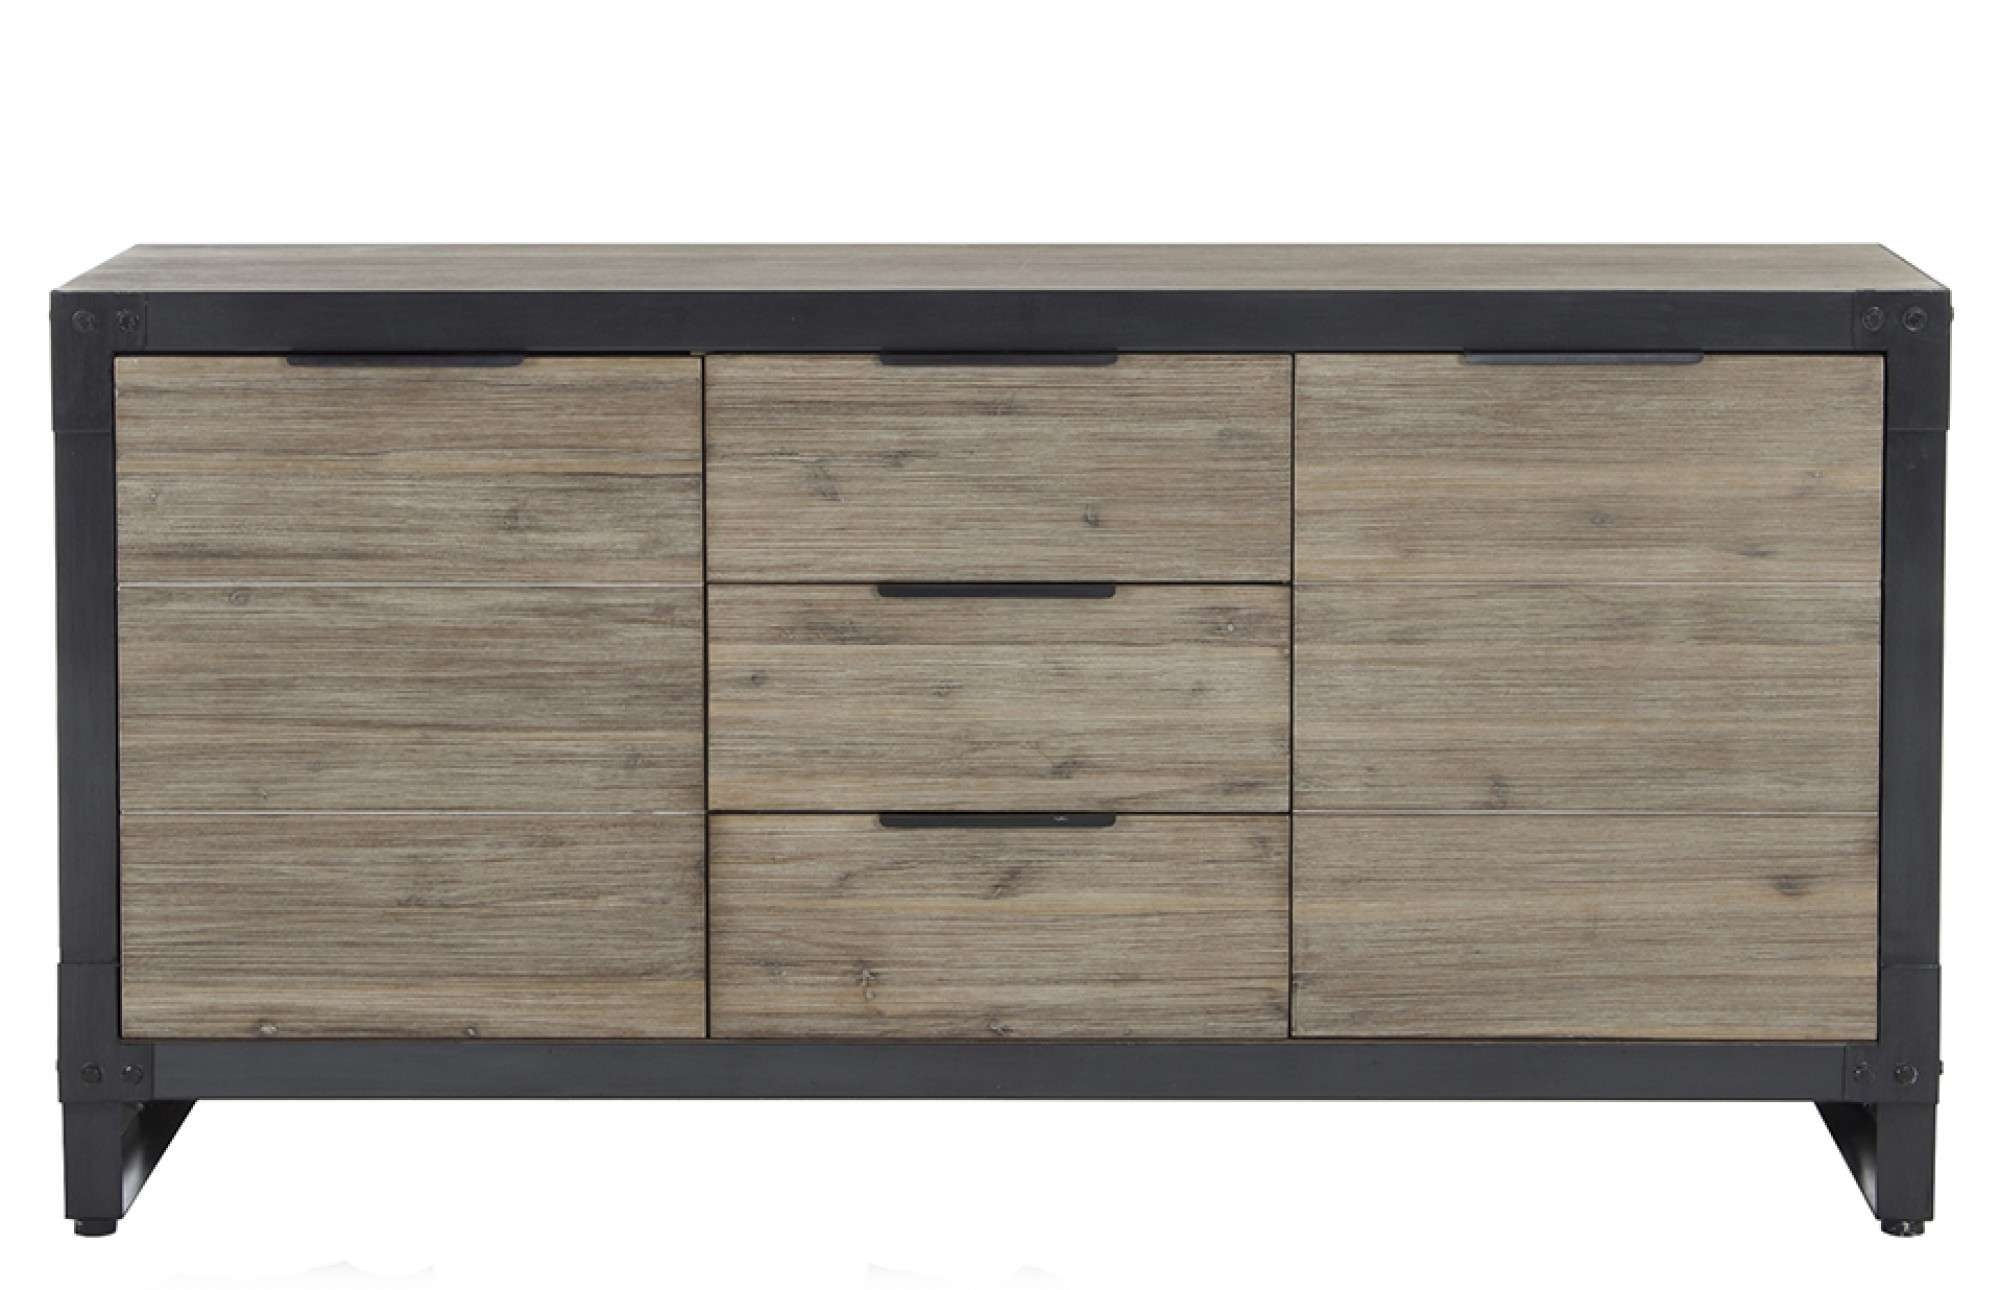 Sideboards, Storage & Shelving – Home Furniture – Out & Out Original For Trendy Sideboards (View 7 of 20)